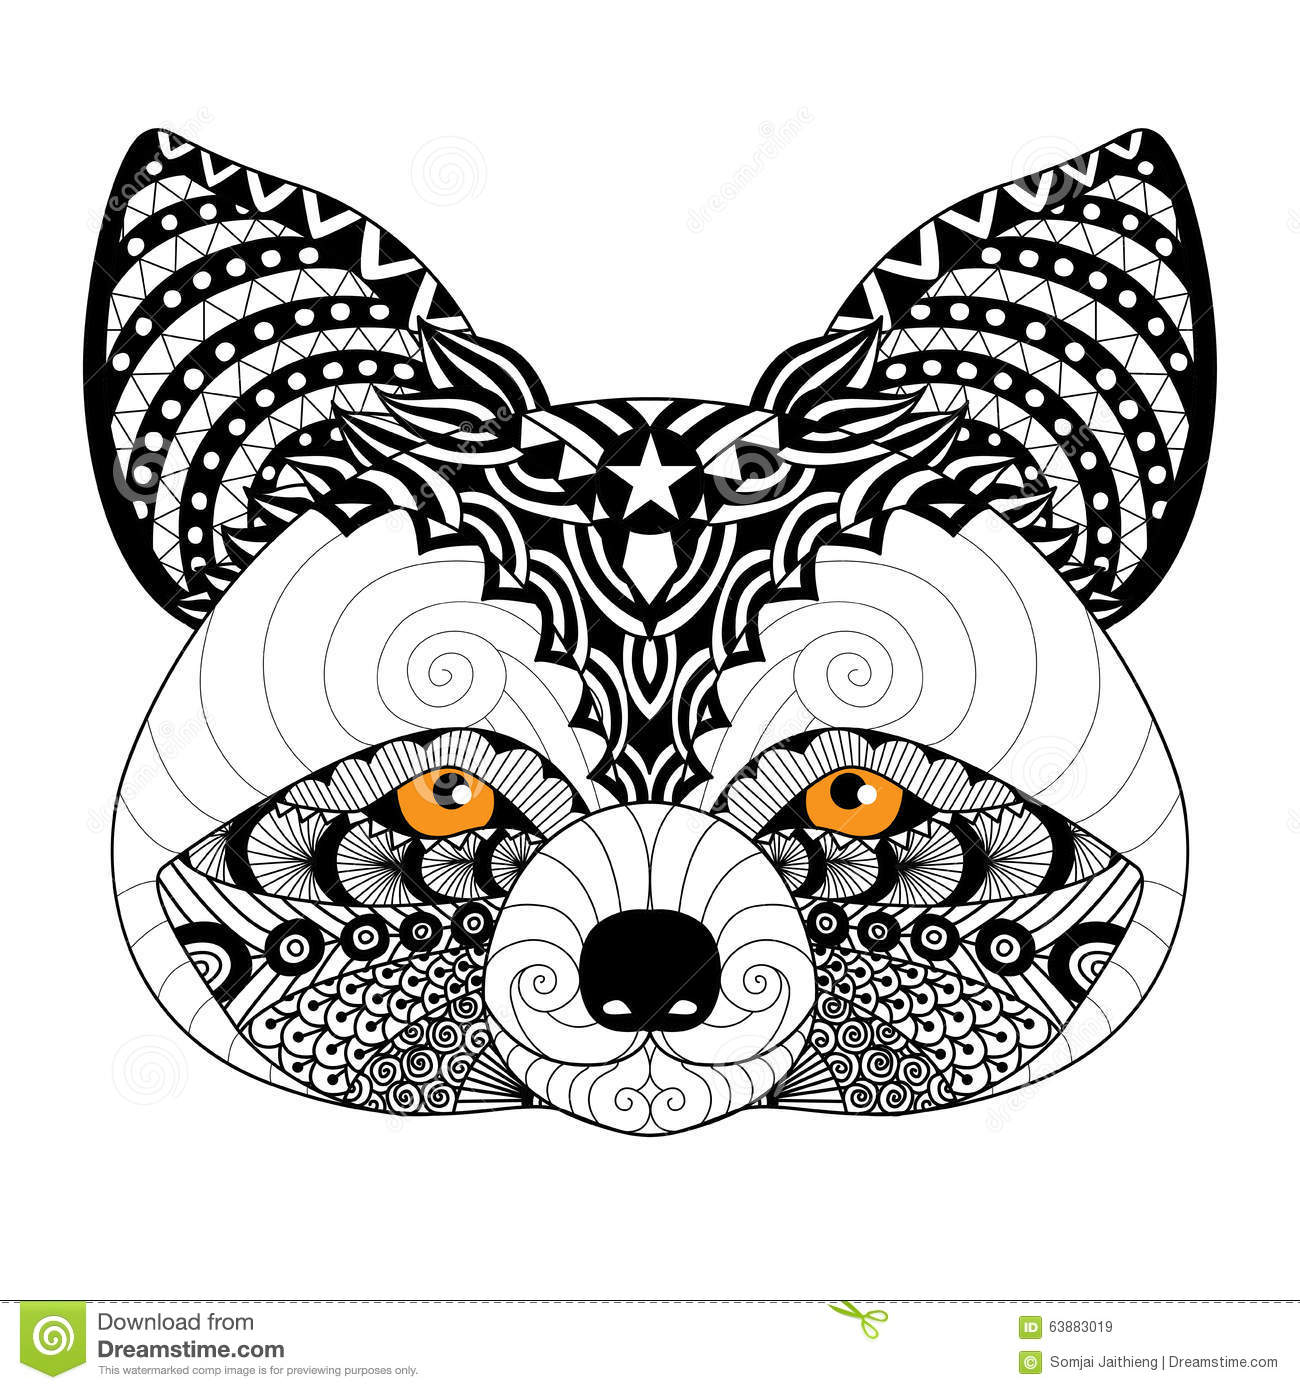 Free coloring pages raccoon - Zentangle Raccoon For Coloring Page For Adult Tattoo Logo Shirt Design And Other Decorations